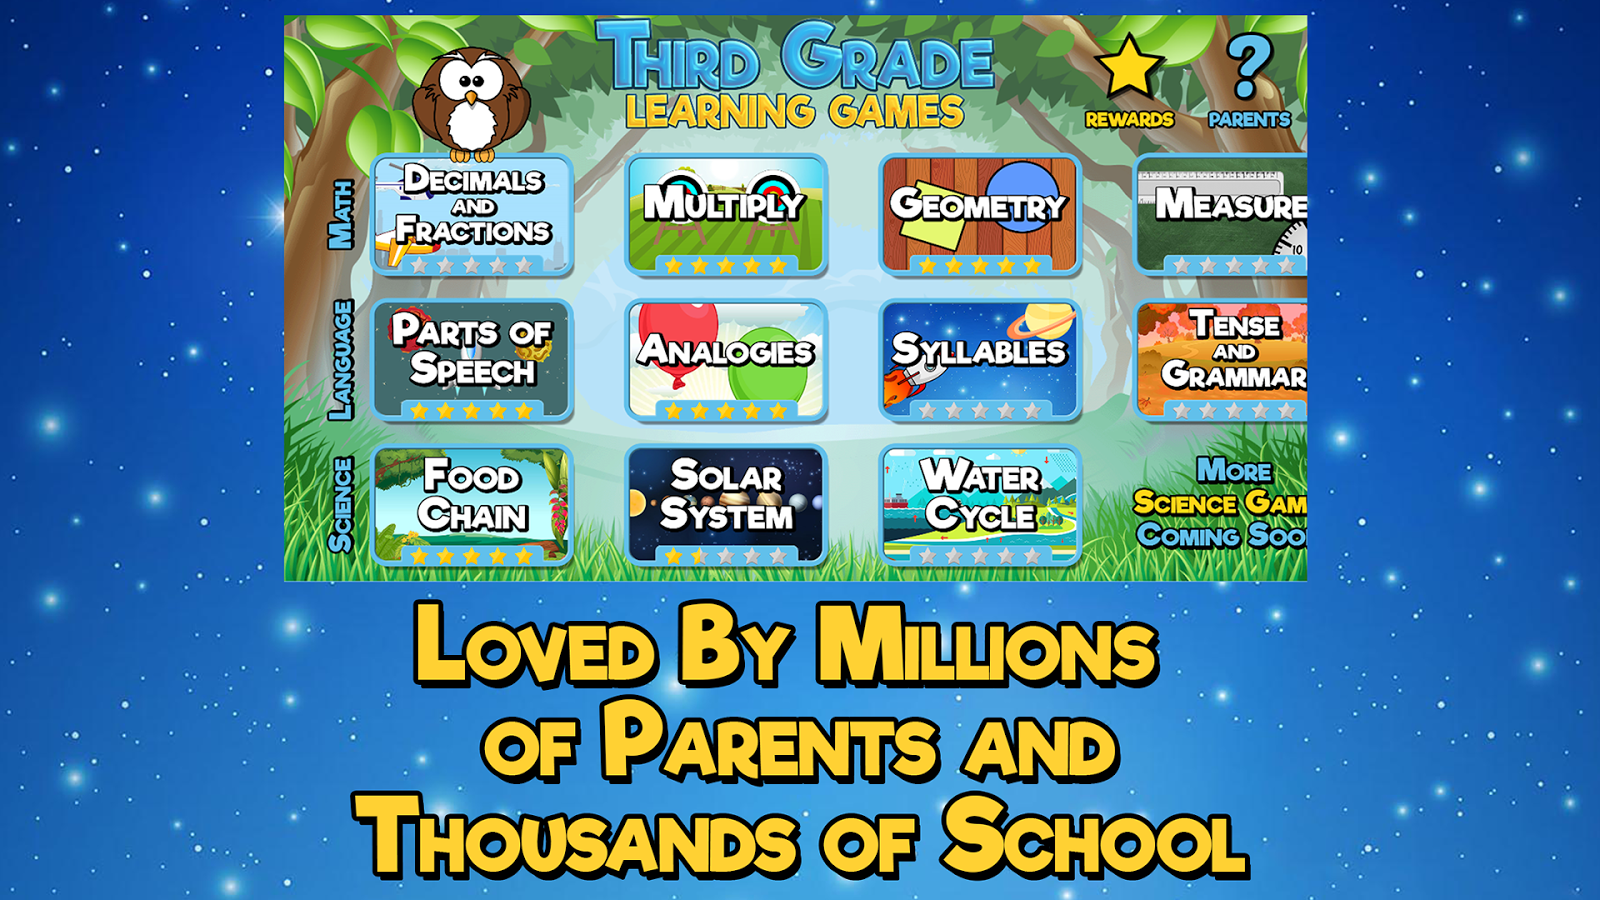 Third Grade Learning Games - Android Apps on Google Play